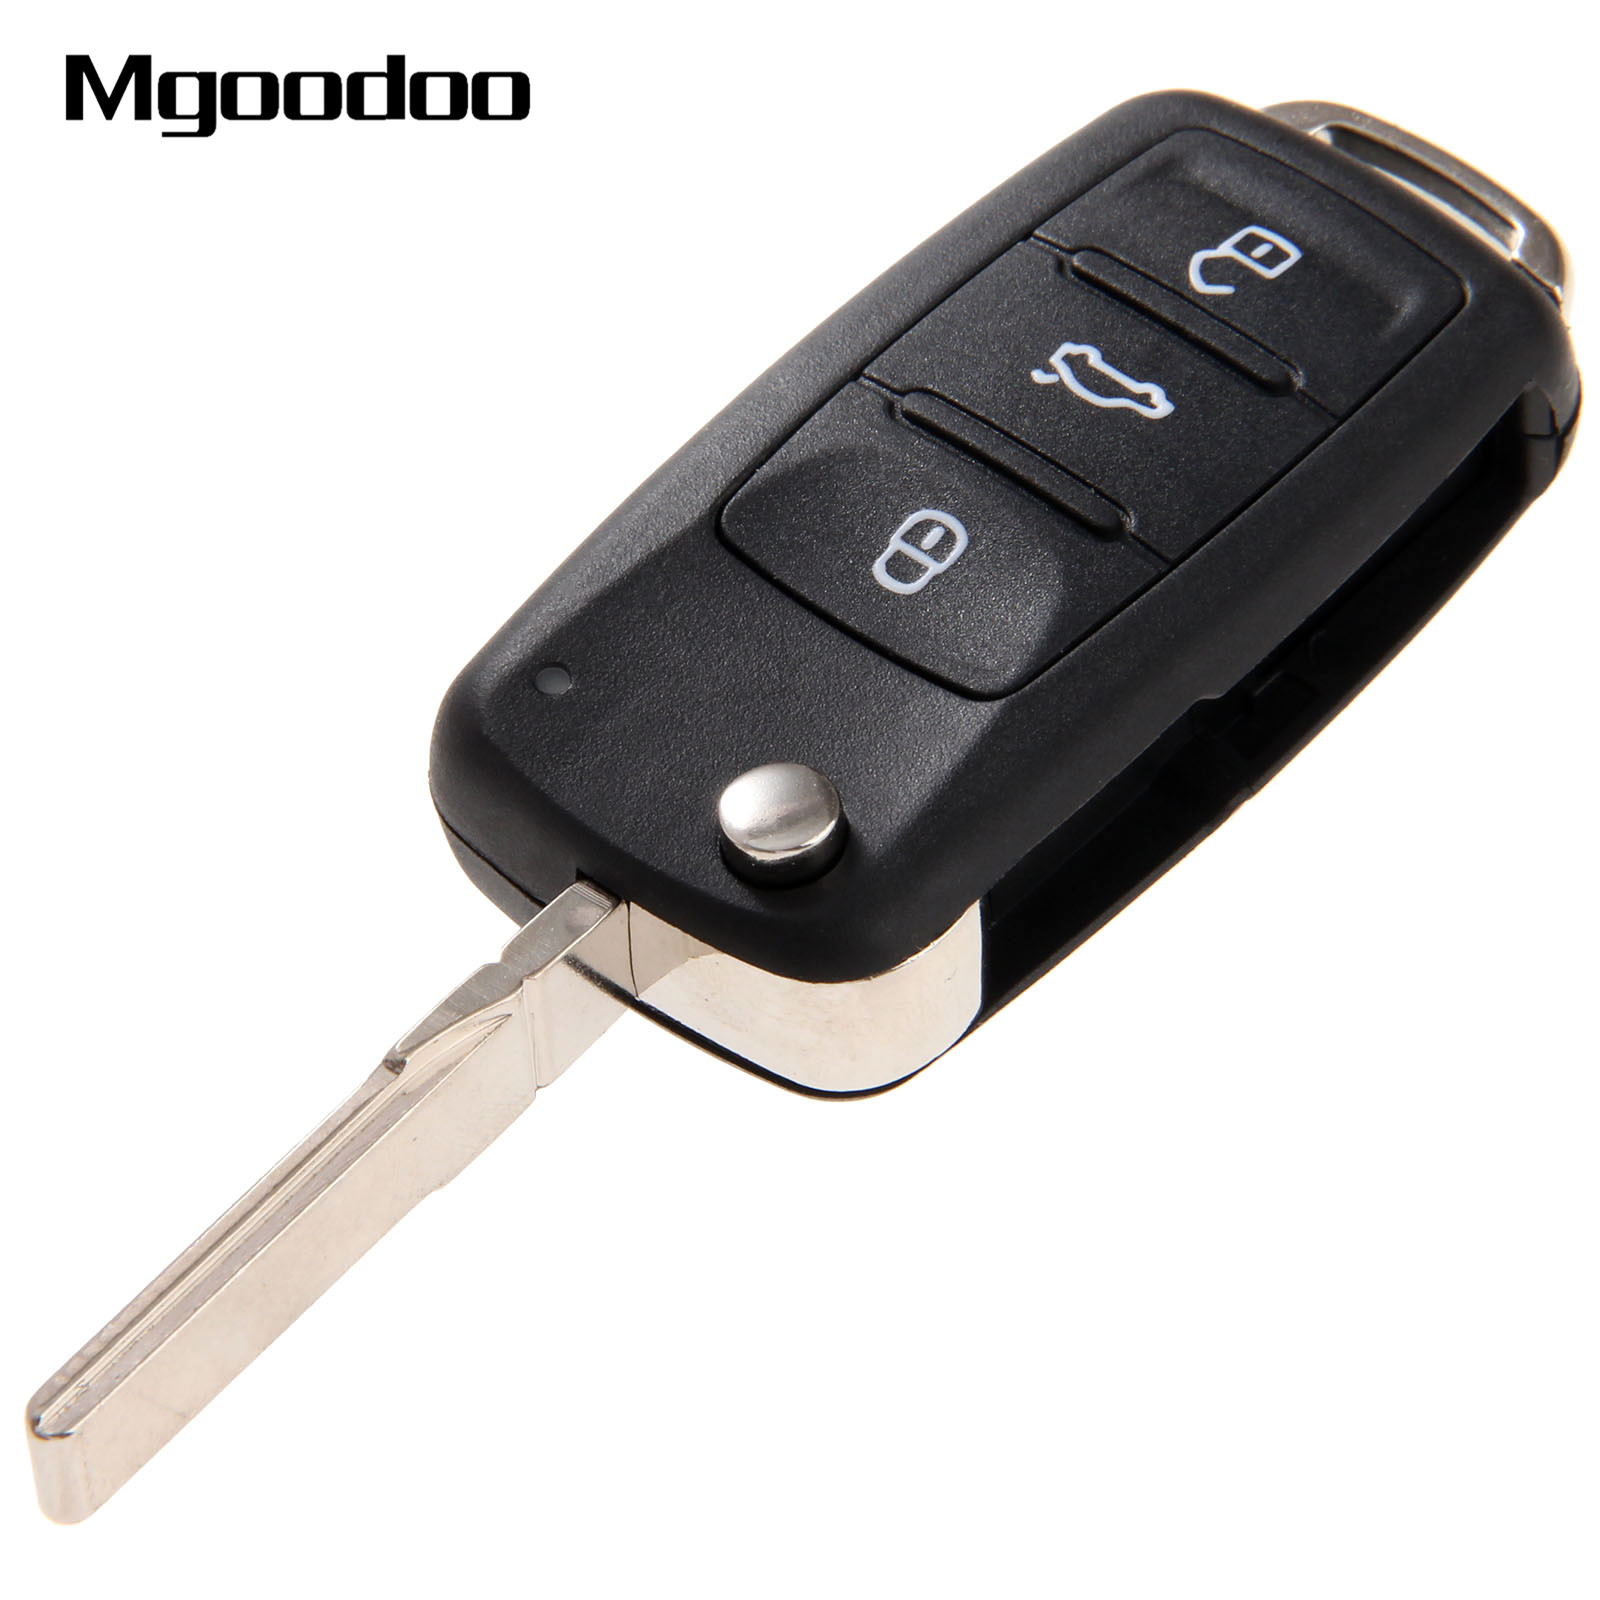 New 3 Buttons Flip Folding Remote Car Key Shell For VW Volkswagen Golf Mk6 Tiguan Polo Skoda Octavia Replacement Blank Case Fob